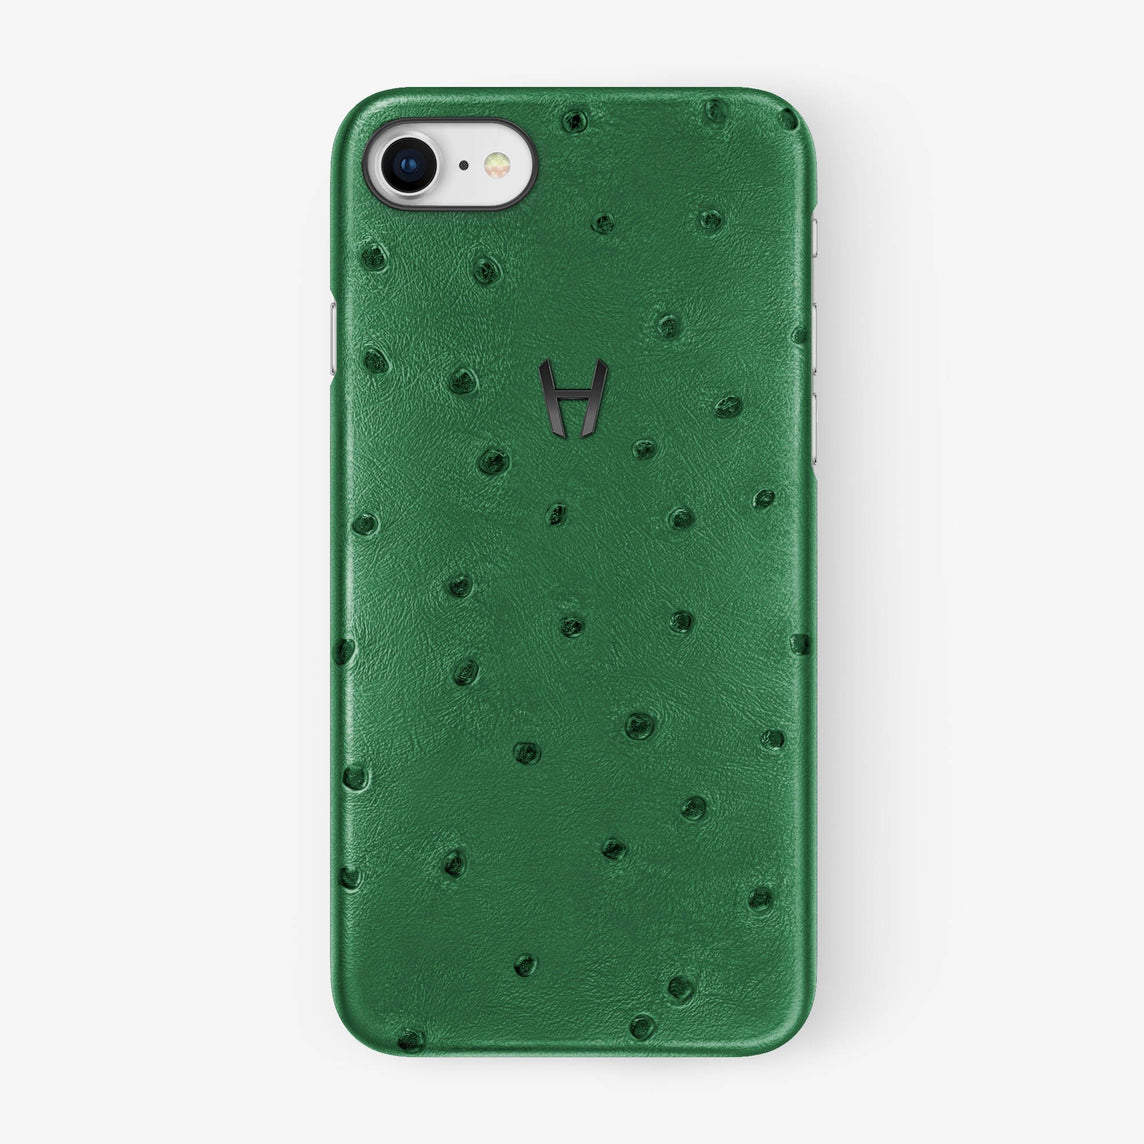 Green Ostrich iPhone Case for iPhone 7/8 finishing black - Hadoro Luxury Cases